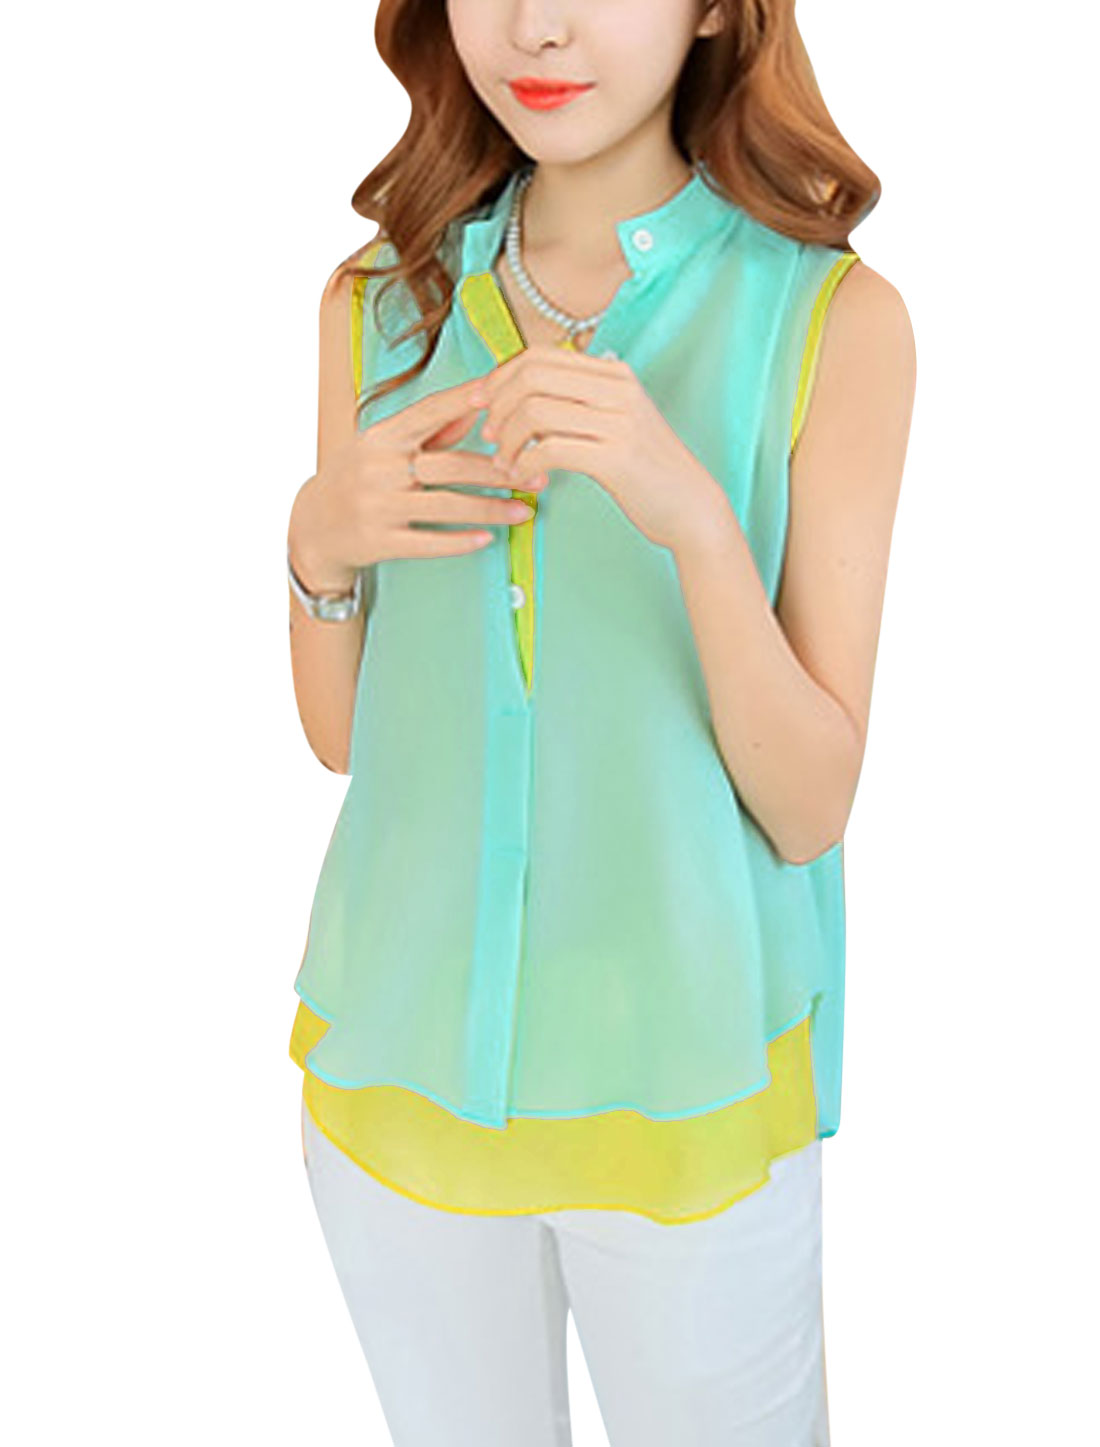 Ladies See Through Tank Top w Piped Detail Chiffon Shirt Light Yellow Mint S